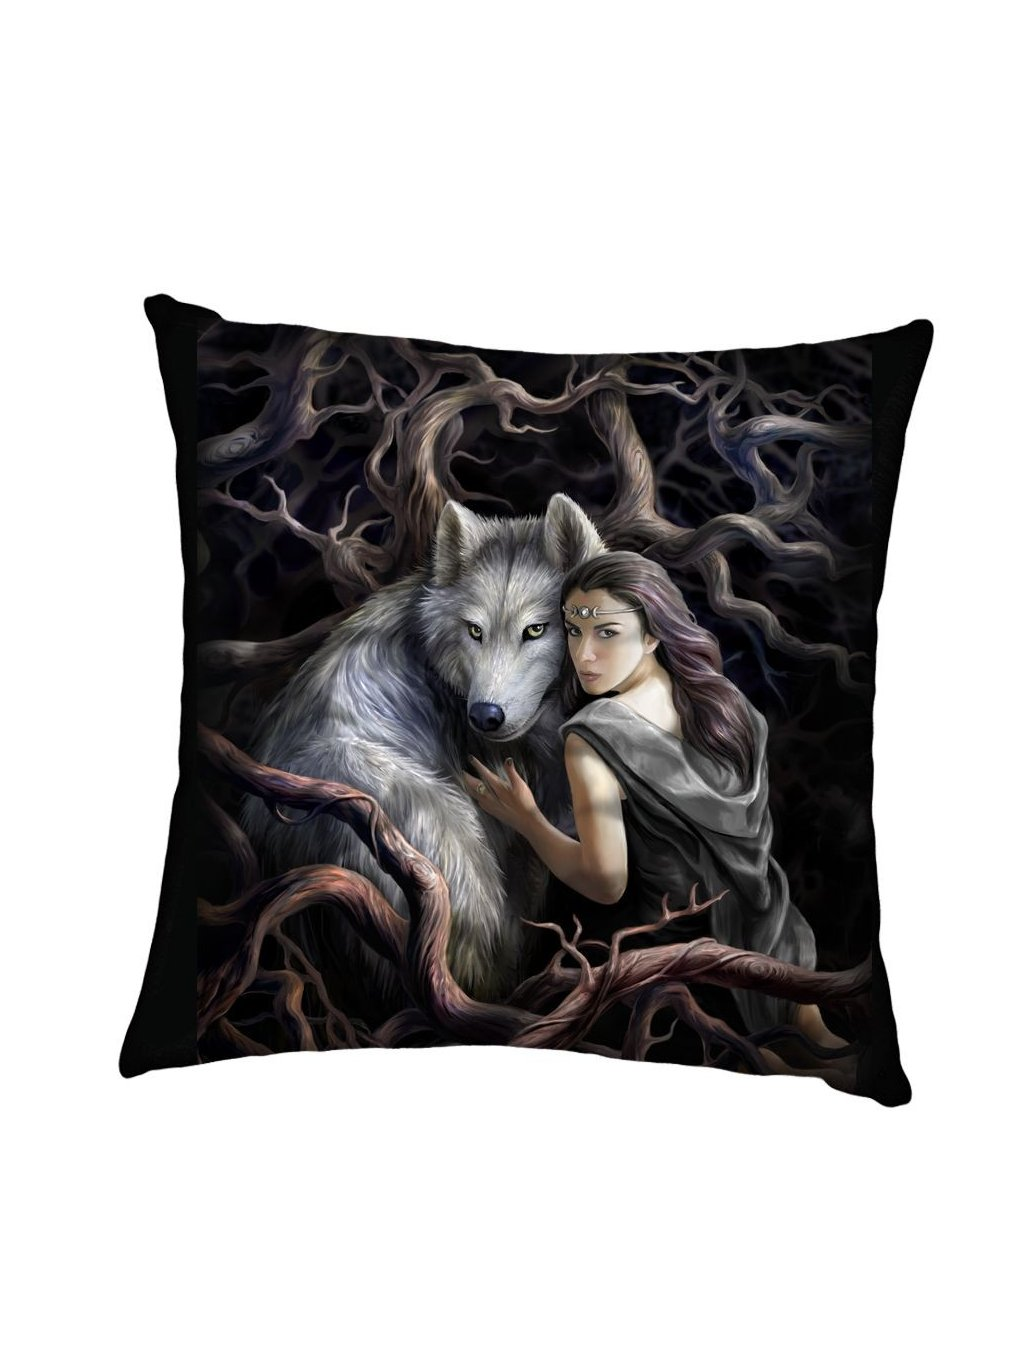 soul bond cushion 40cm